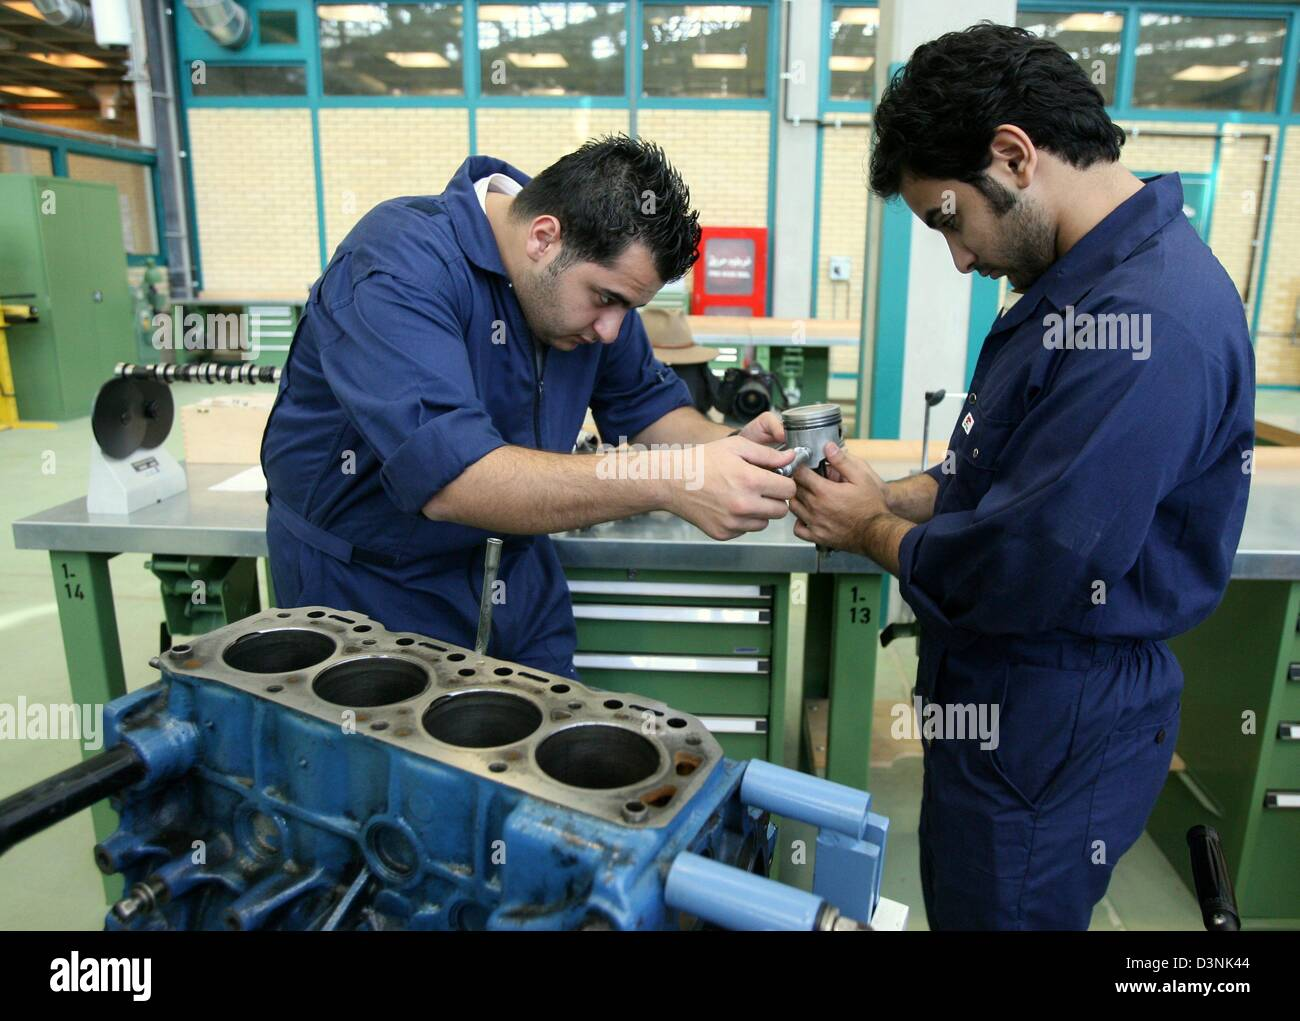 Apprentices measure pistons as part of the vocational training by the GTZ (German Corporation for Technical Cooperation) Stock Photo